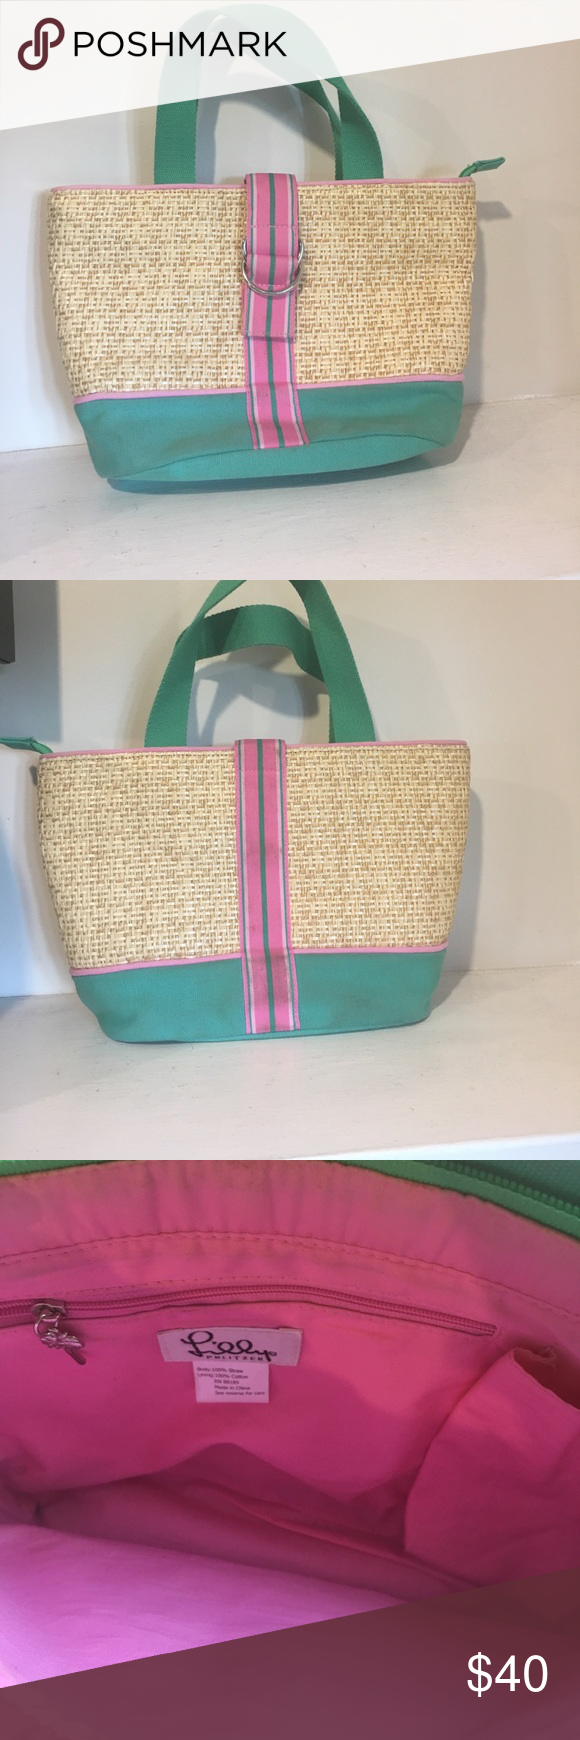 Lilly Pulitzer bag! Wicker and canvas bag barley used great pink and green colors! Lilly Pulitzer Bags